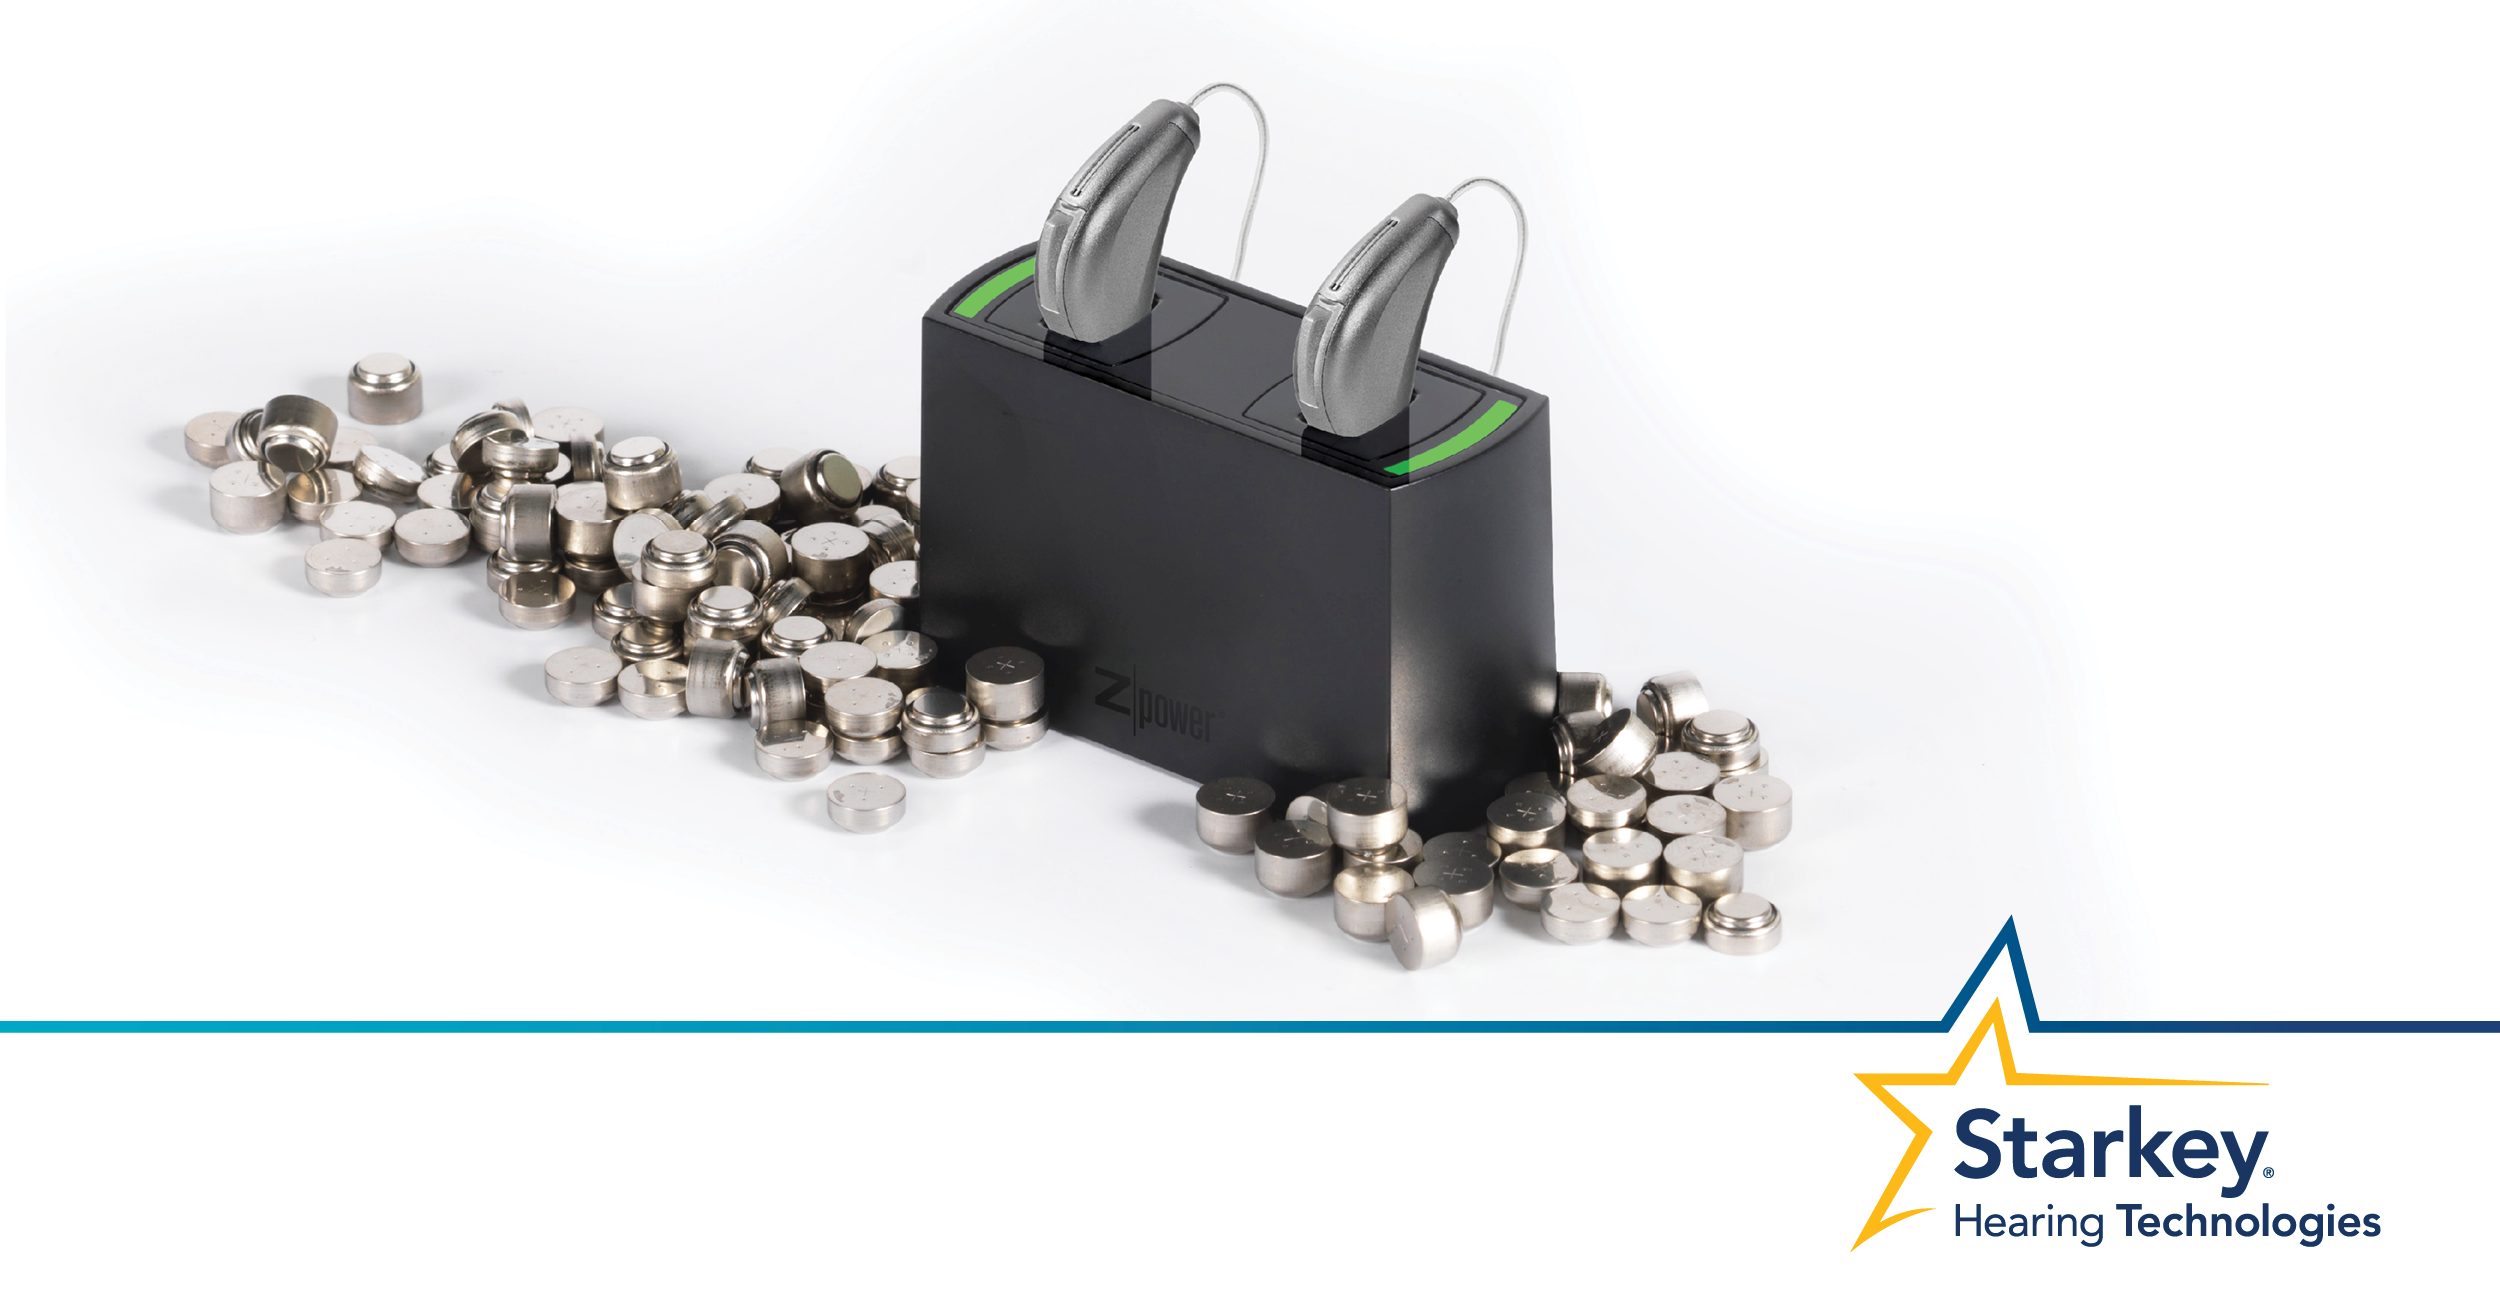 rechargeable hearing aids from starkey